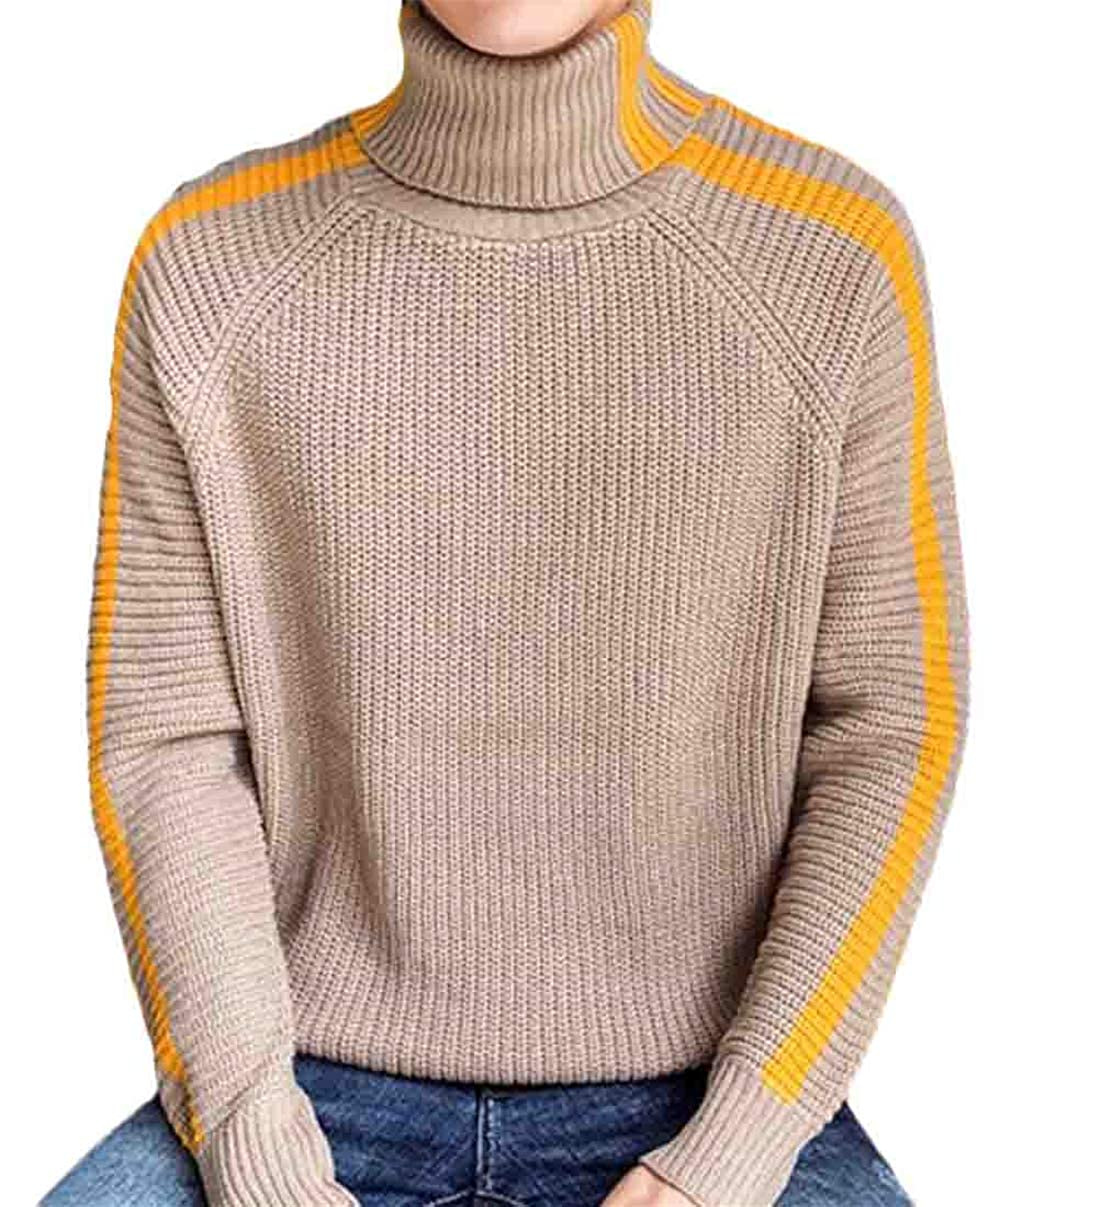 Spirio Mens Turtleneck Long Sleeve Thicken Pullover Knit Striped Winter Sweater Tops